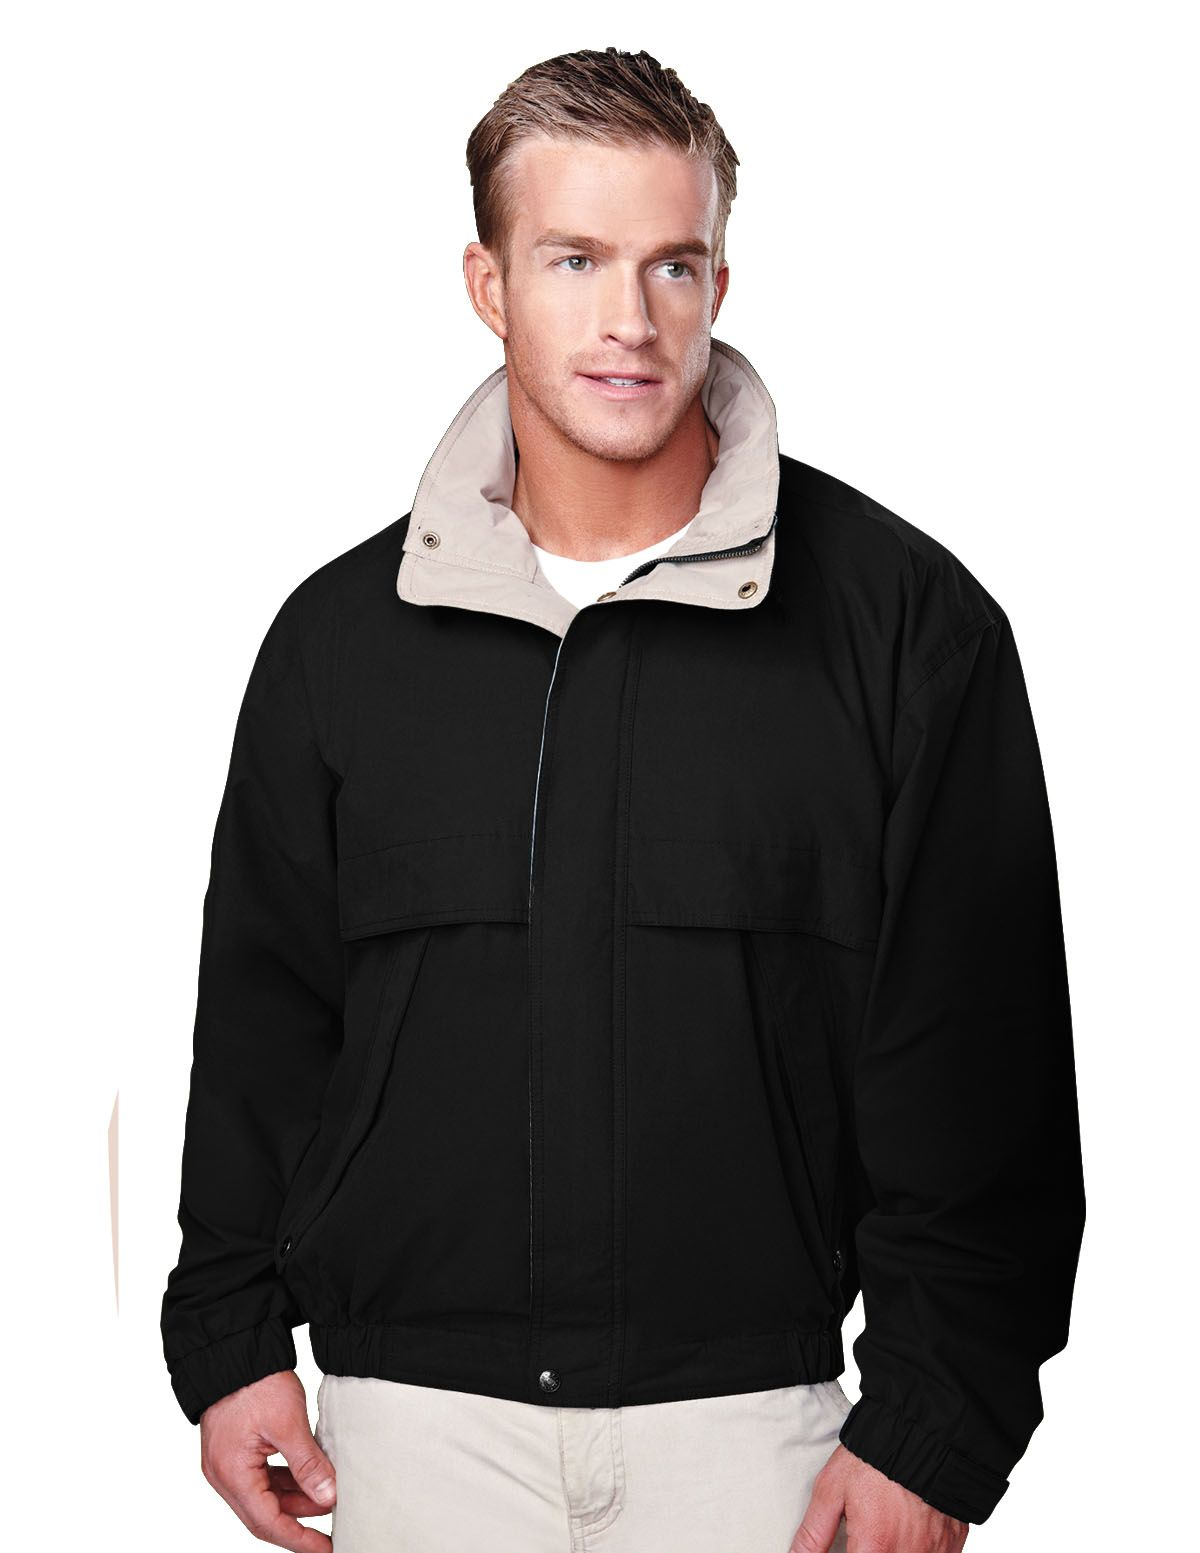 Tri Mountain 5300 Panorama Cotton Poly Poplin Jacket With Poplin Lining Men S Coats And Jackets Winter Clothing Stores Jackets [ 1553 x 1200 Pixel ]